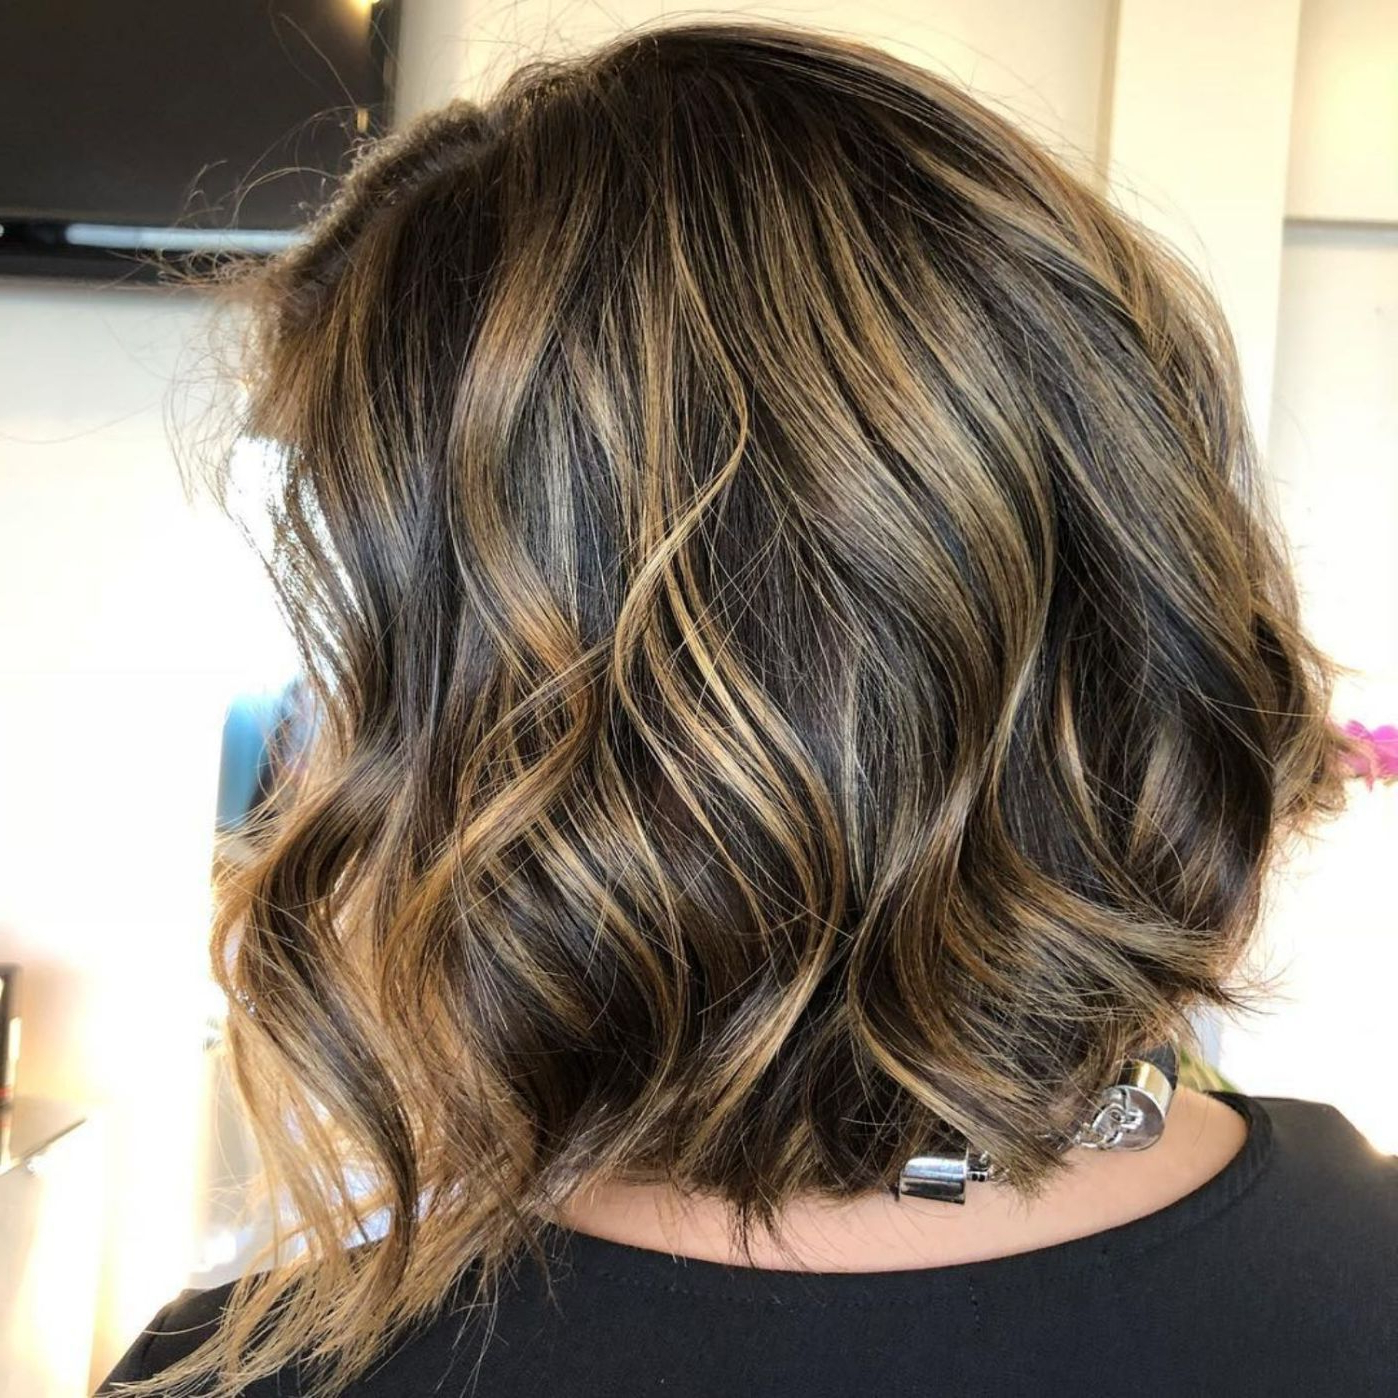 50 Gorgeous Wavy Bob Hairstyles With An Extra Touch Of Intended For Feminine Wavy Golden Blonde Bob Hairstyles (View 10 of 20)